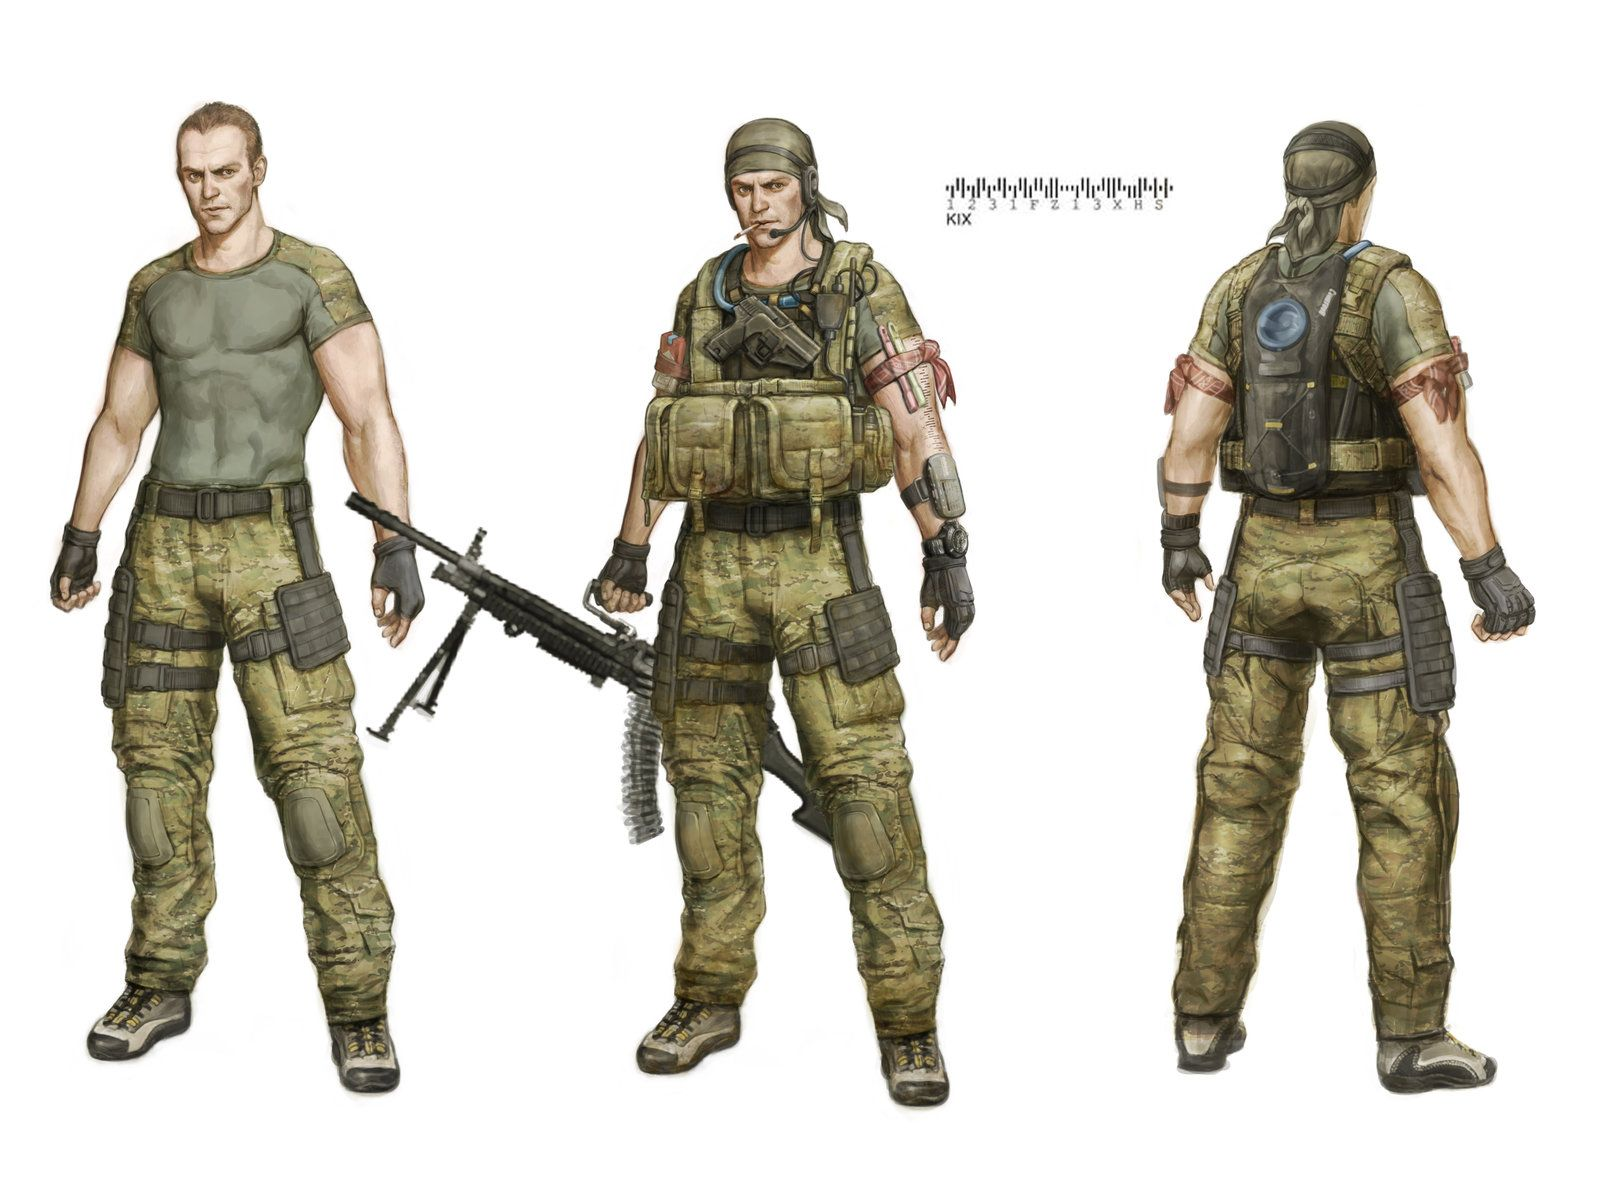 special force character concept (US NAVY SEAL), Sungwook